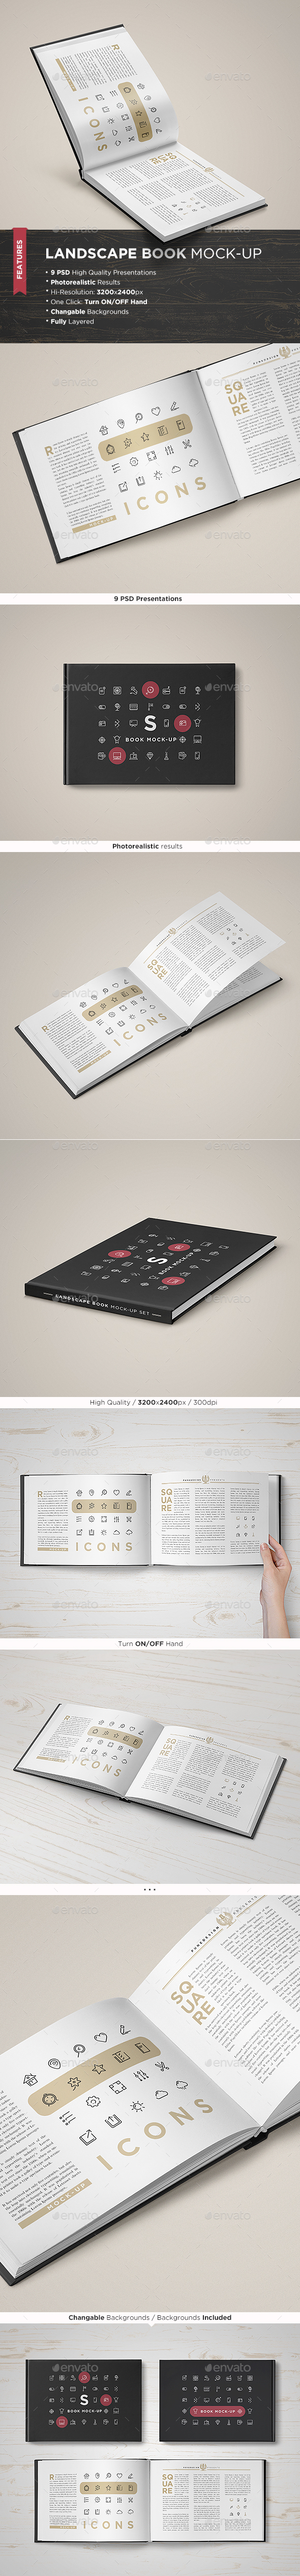 Landscape Book Mock-Up Set - Books Print